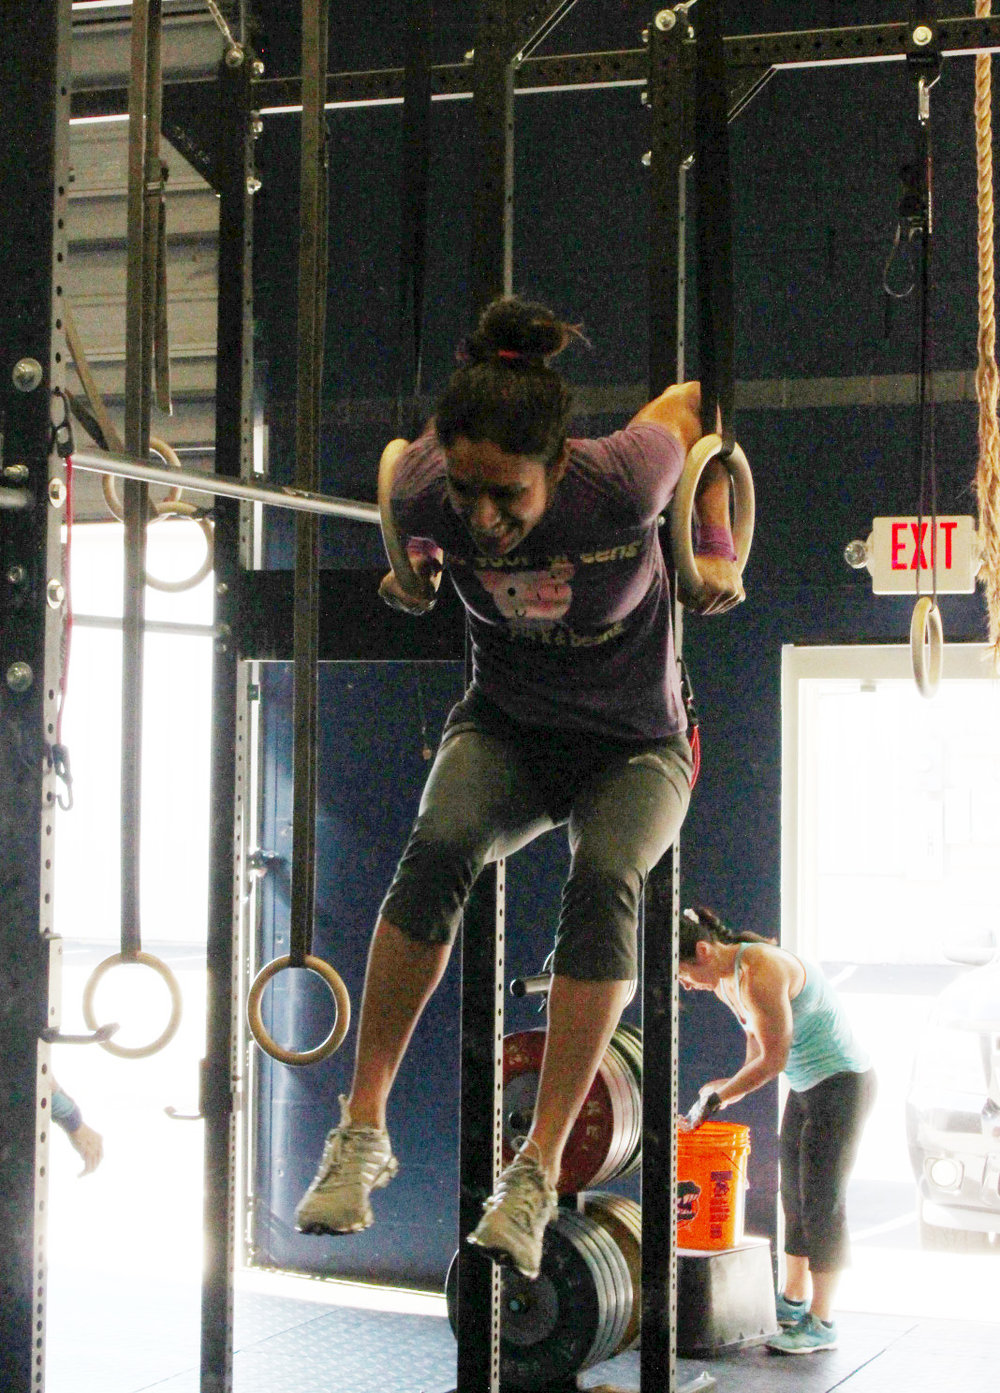 Tejal doing one of the 20 Muscle Ups in the workout!